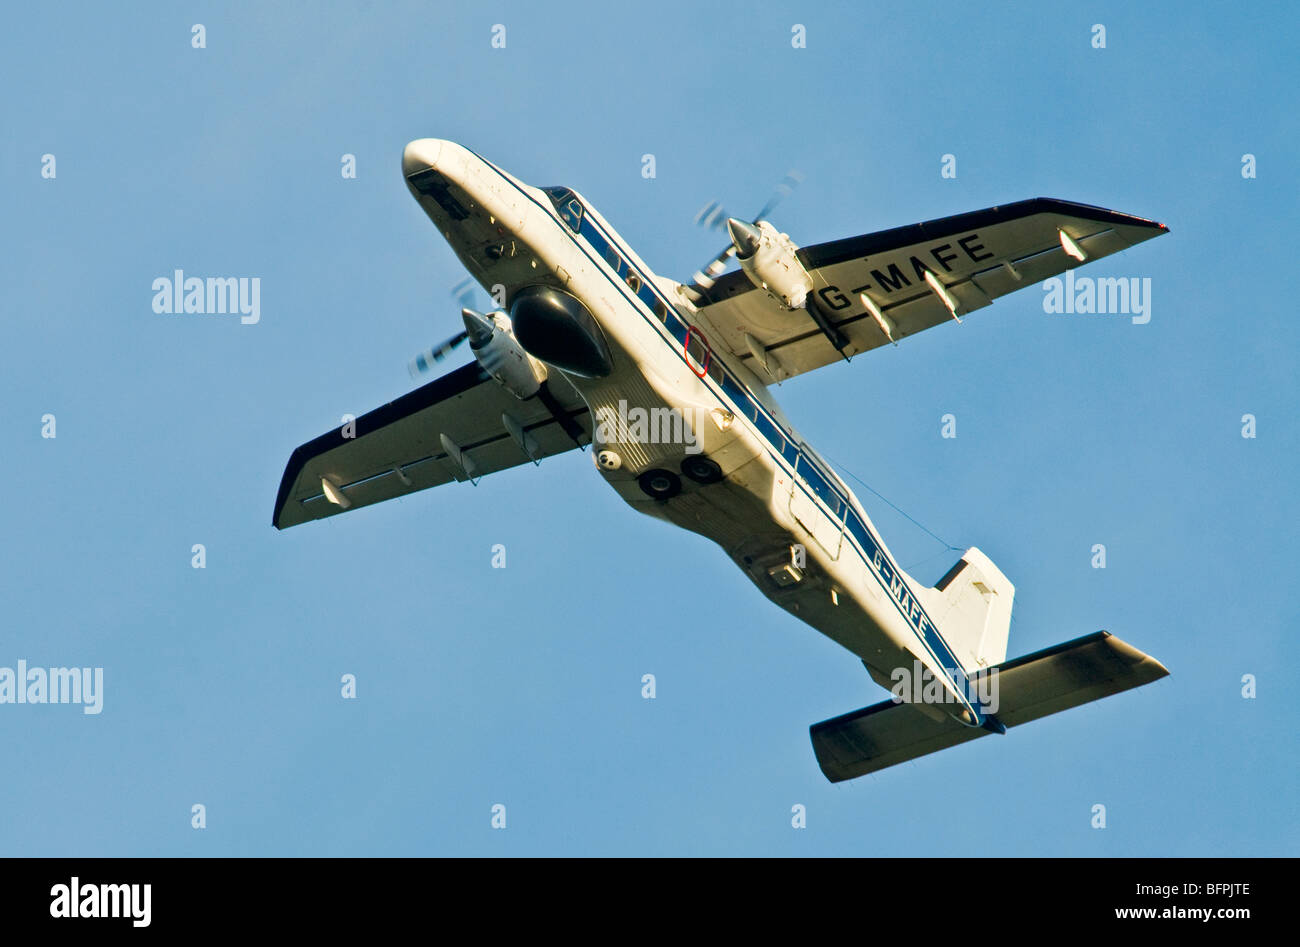 Dornier 228-202 Utility Transport Twin Engined Propellor Driven Aircraft   SCO 5577 - Stock Image